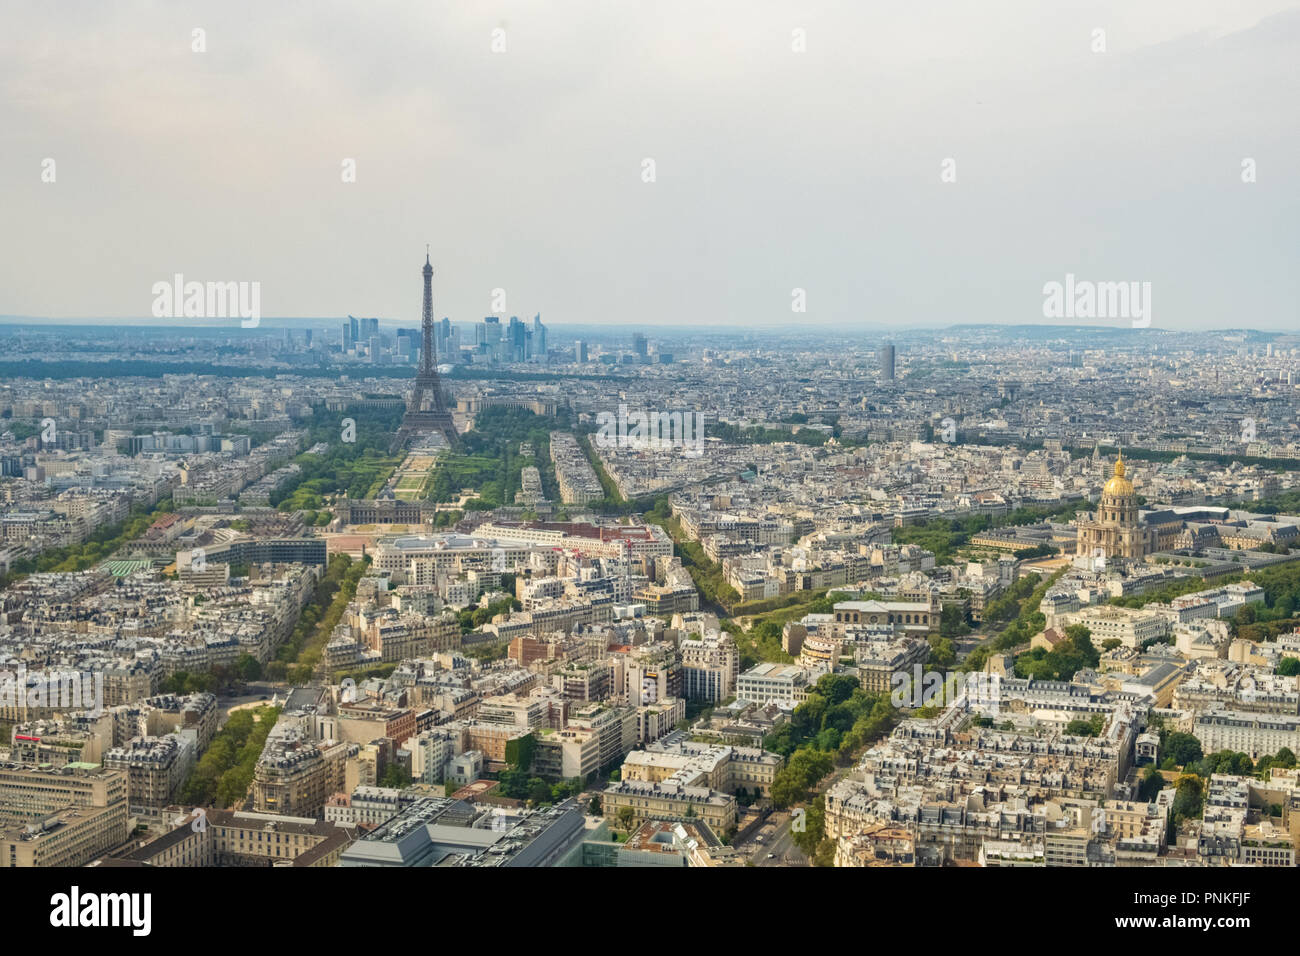 Aerial panormic view of Paris skyline with Eiffel Tower, Les Invalides and business district of Defense, as seen from Montparnasse Tower, Paris, Franc Stock Photo